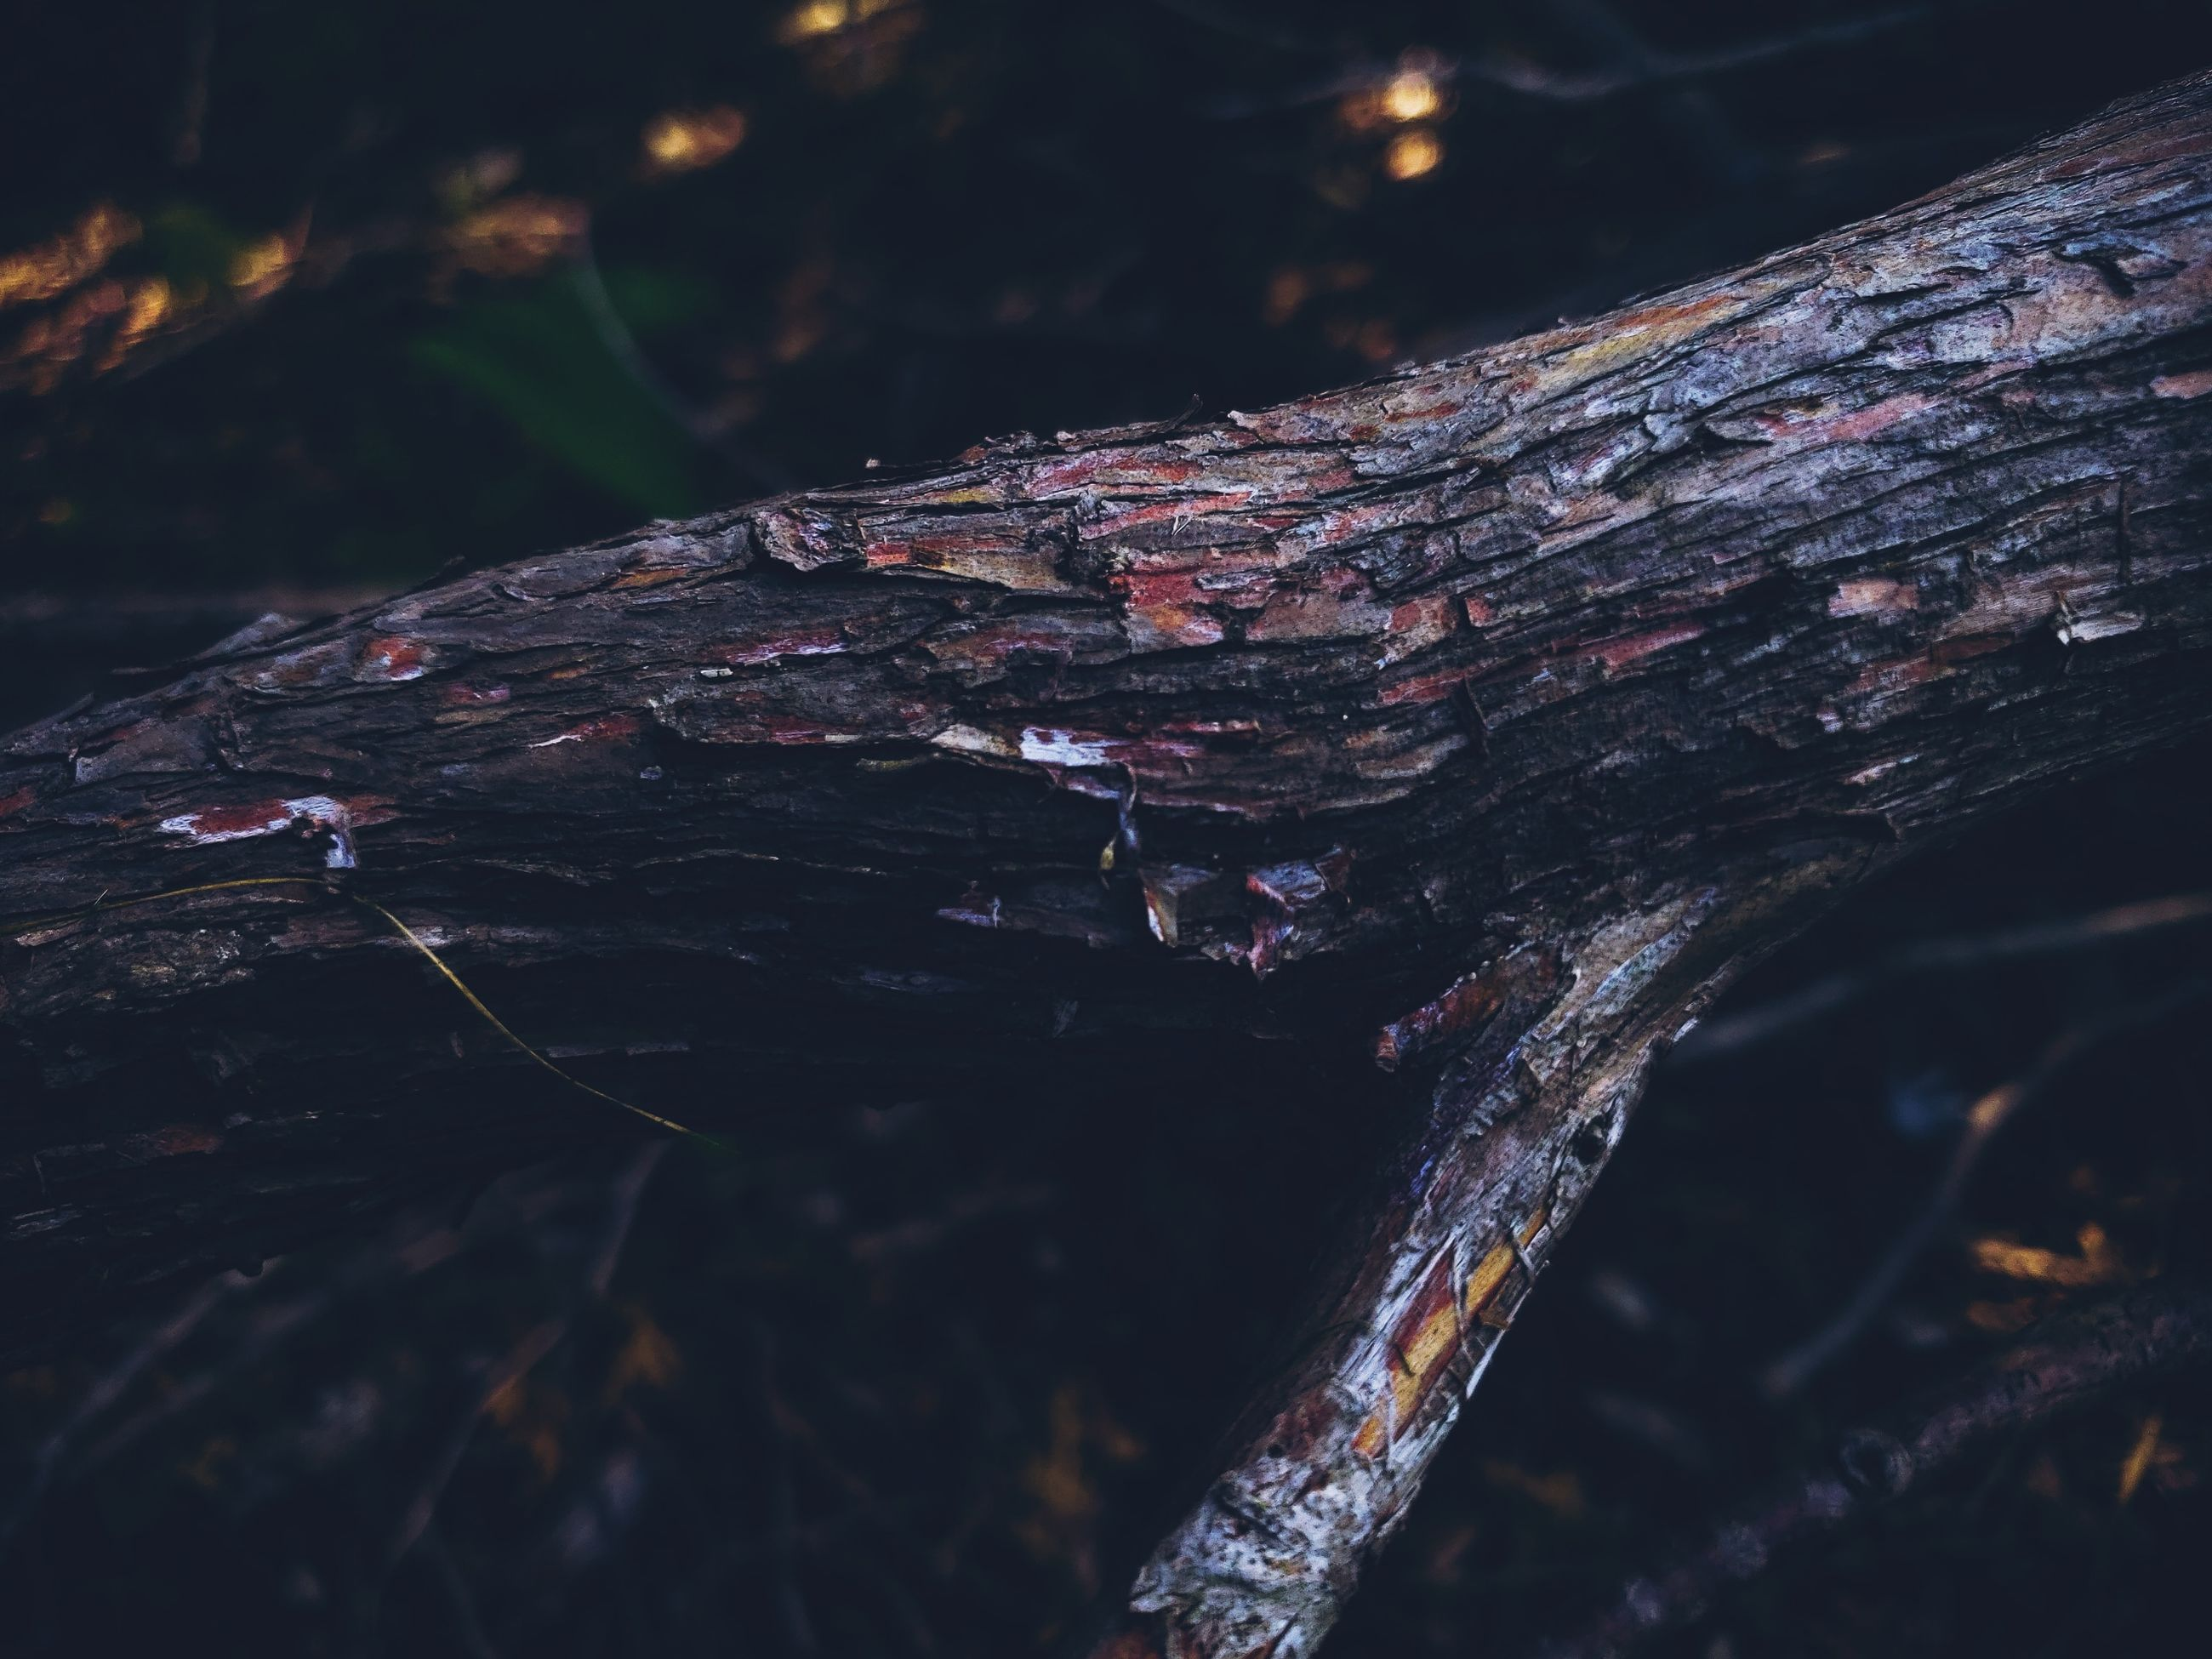 wood - material, tree, log, nature, no people, close-up, timber, wood, day, textured, focus on foreground, outdoors, selective focus, plant, forest, fallen tree, land, tree trunk, firewood, bark